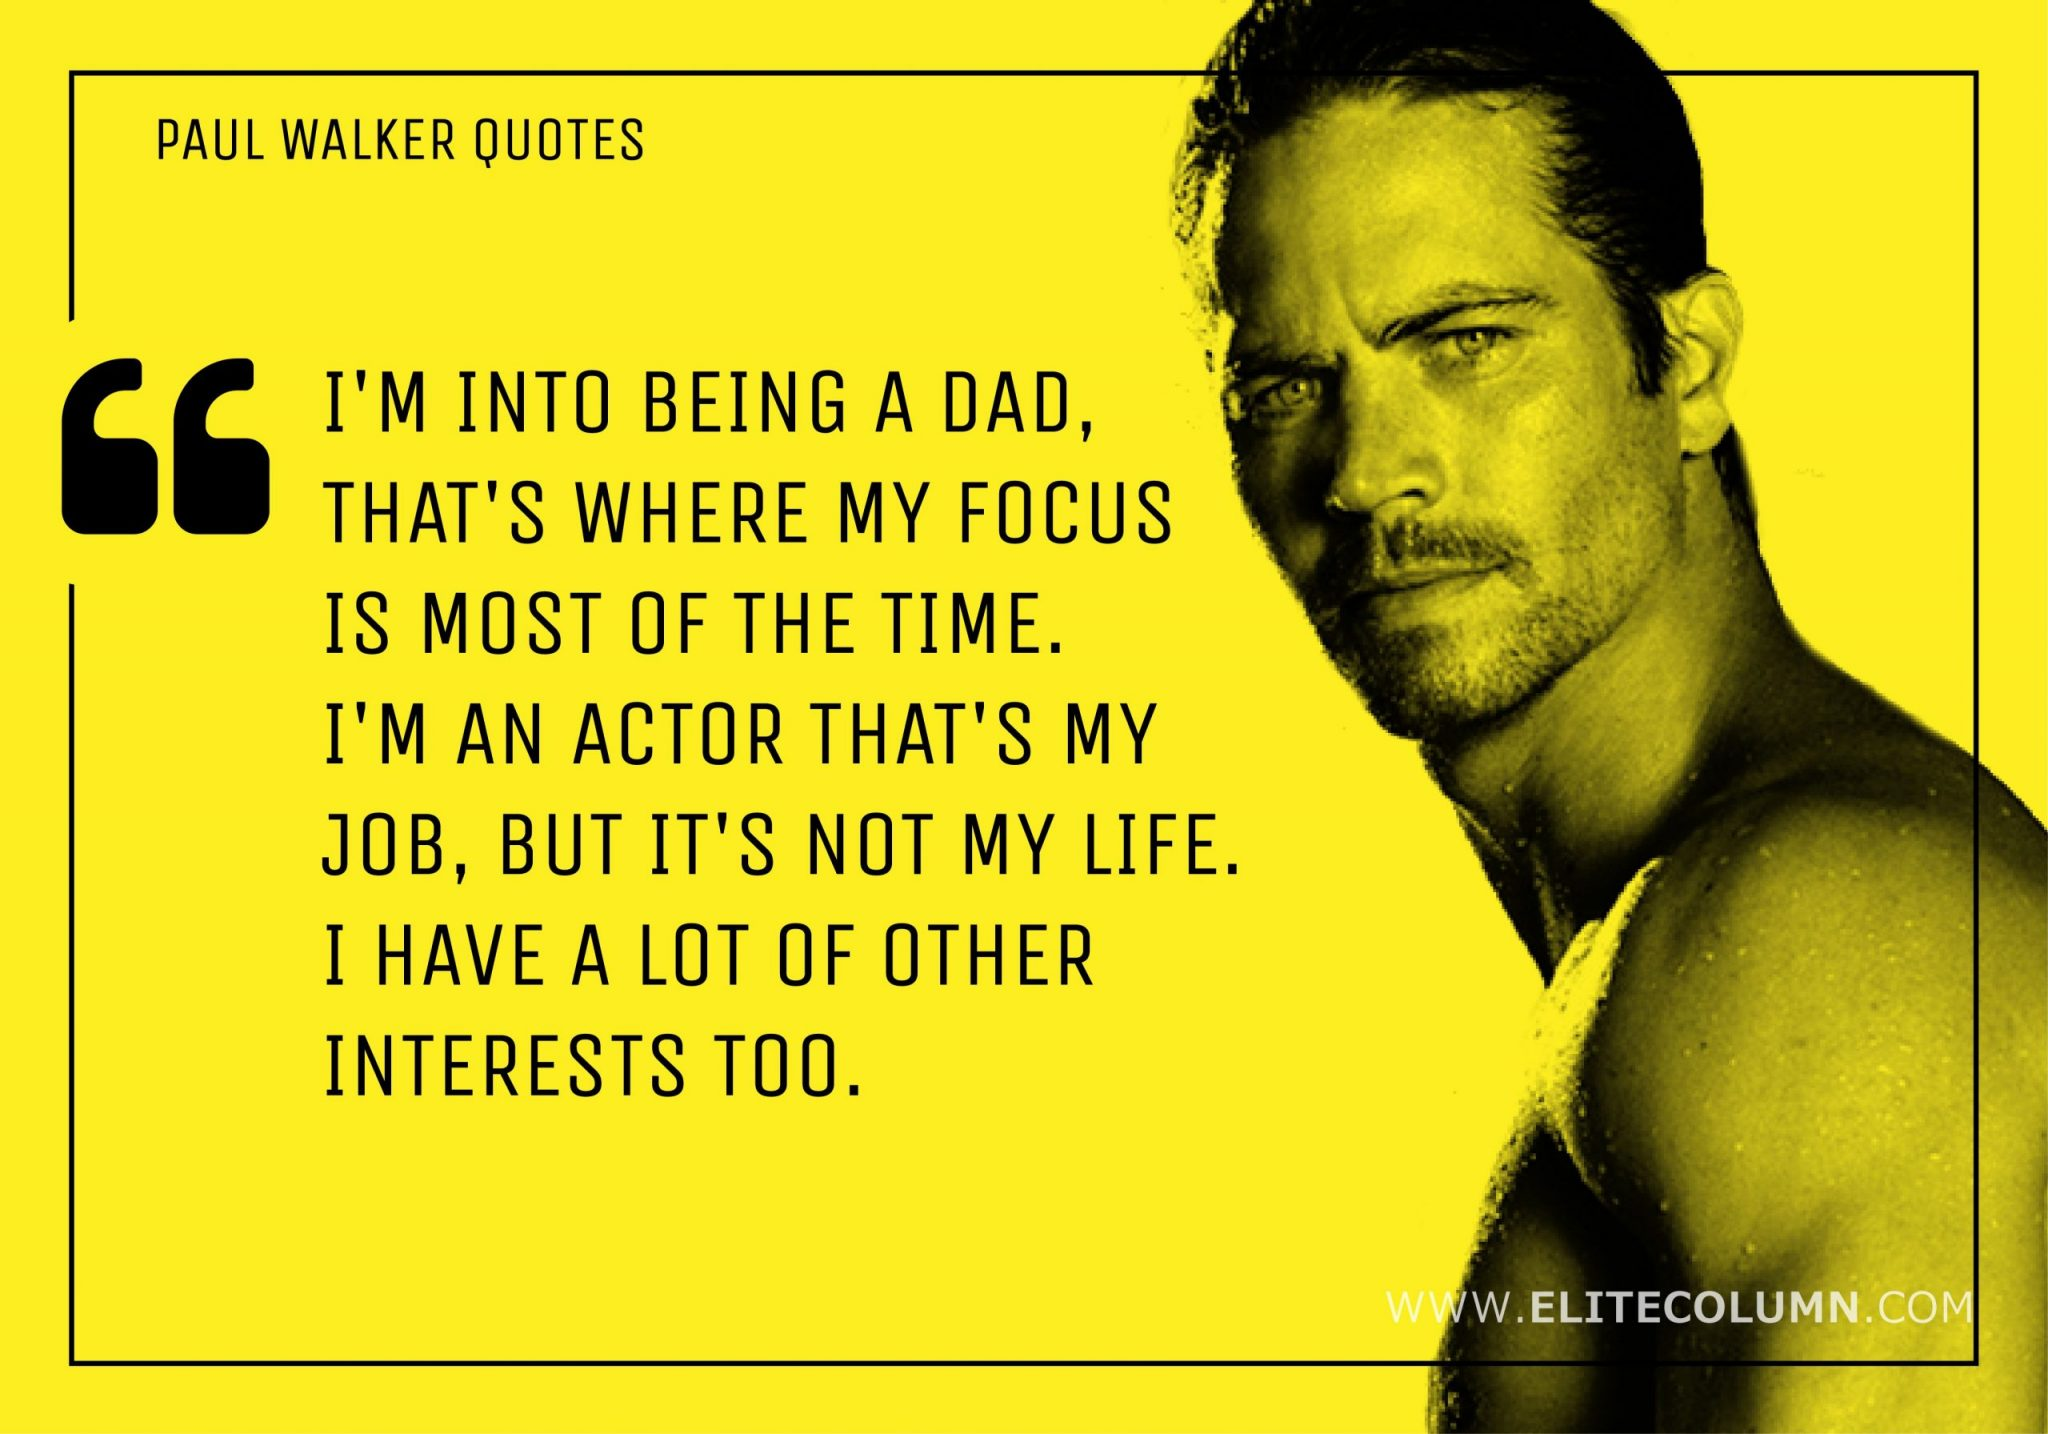 Paul Walker Quotes (10)